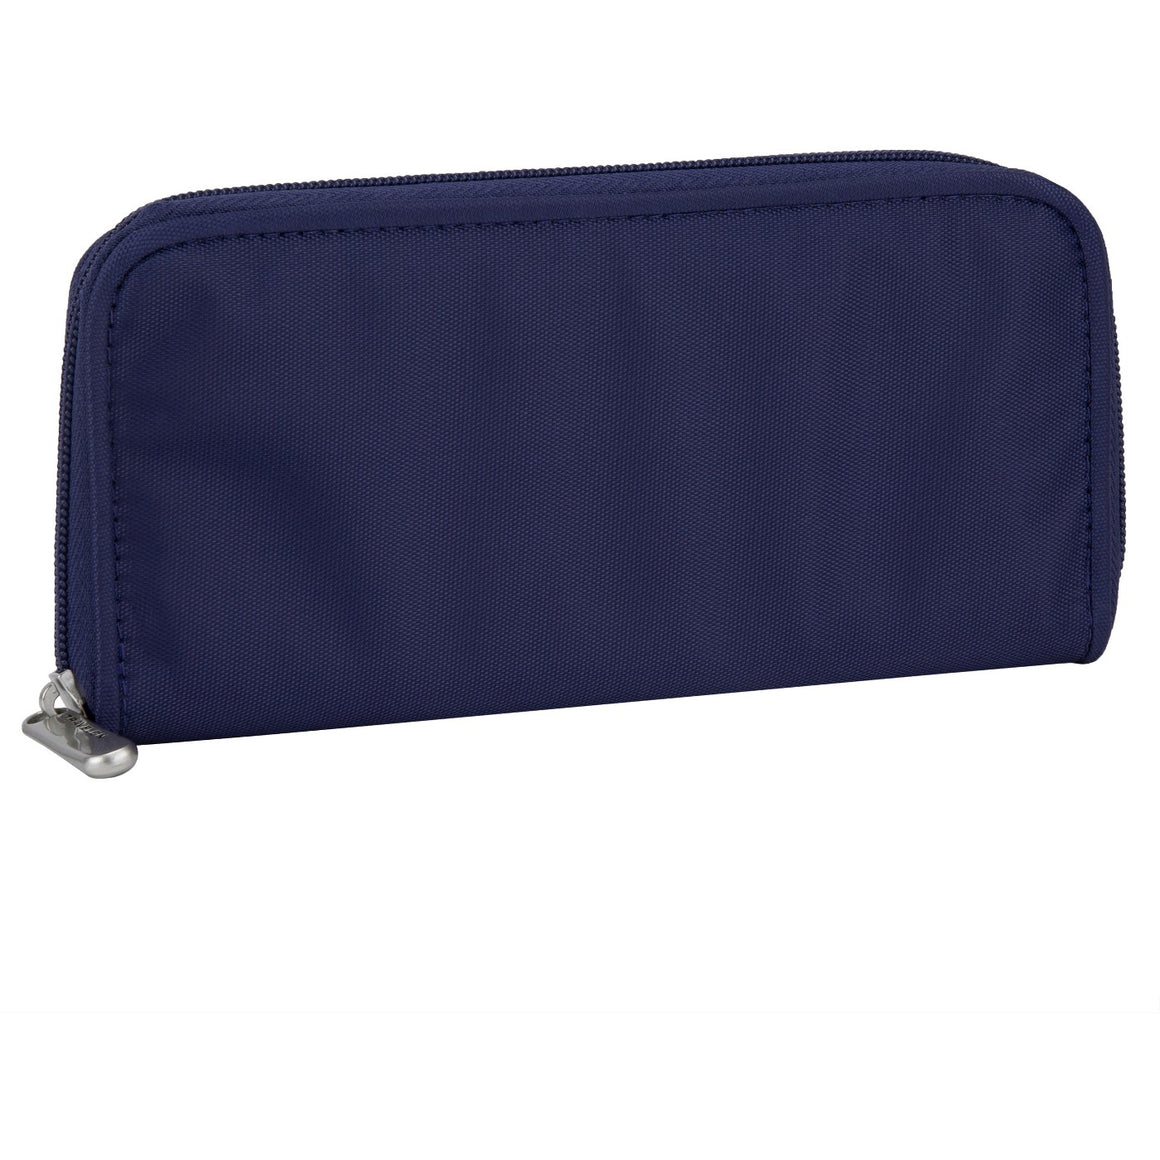 Travelon RFID Blocking Zip Around Clutch Wallet Royal Blue